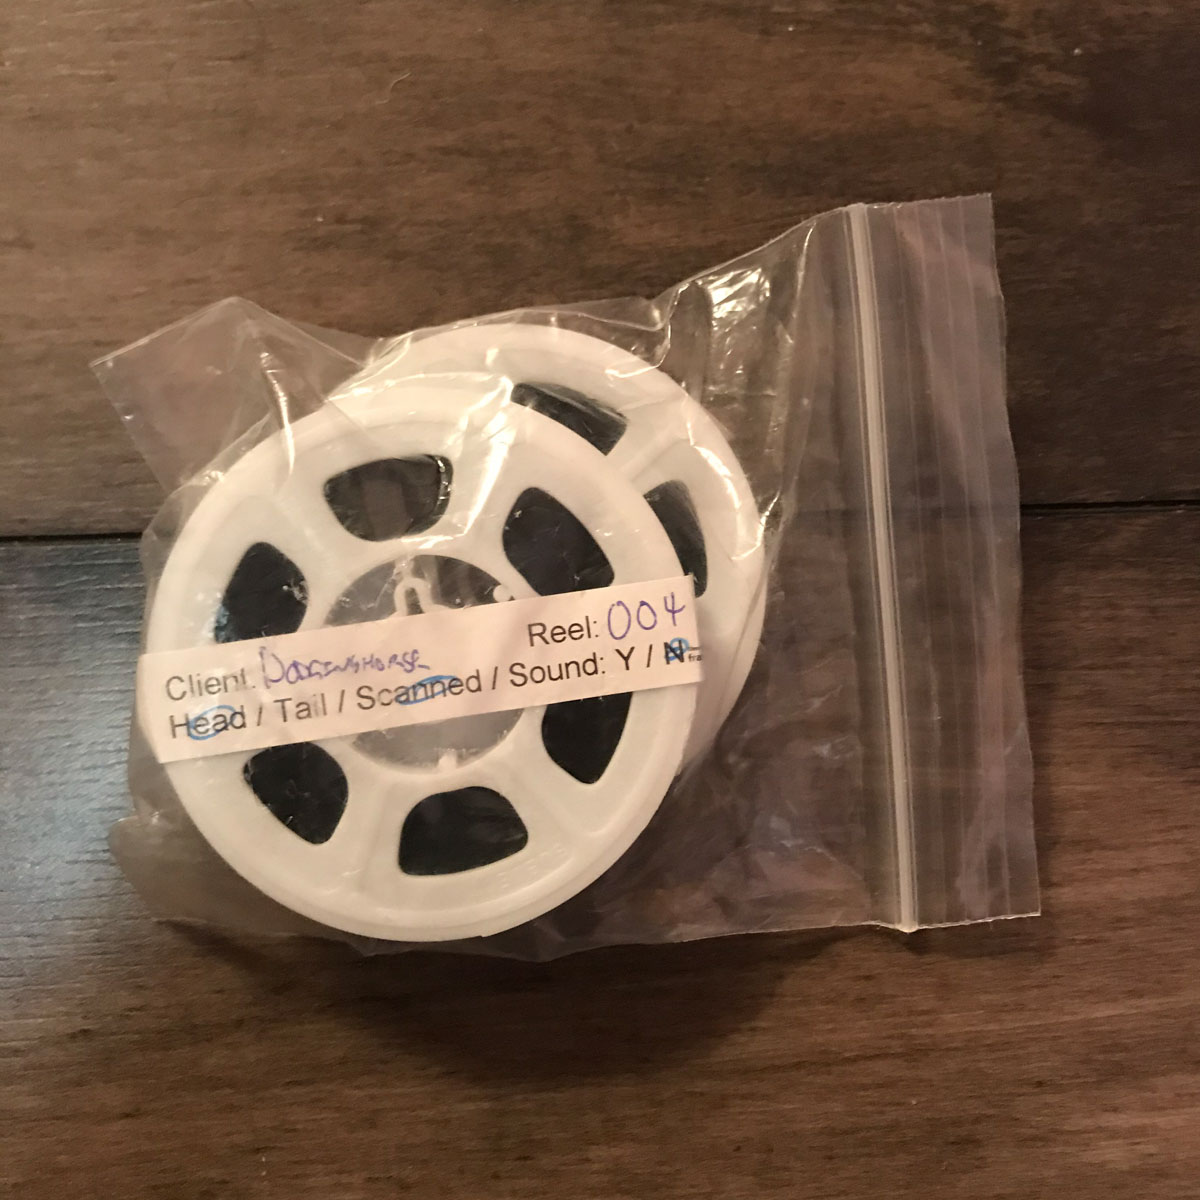 Additional found reels